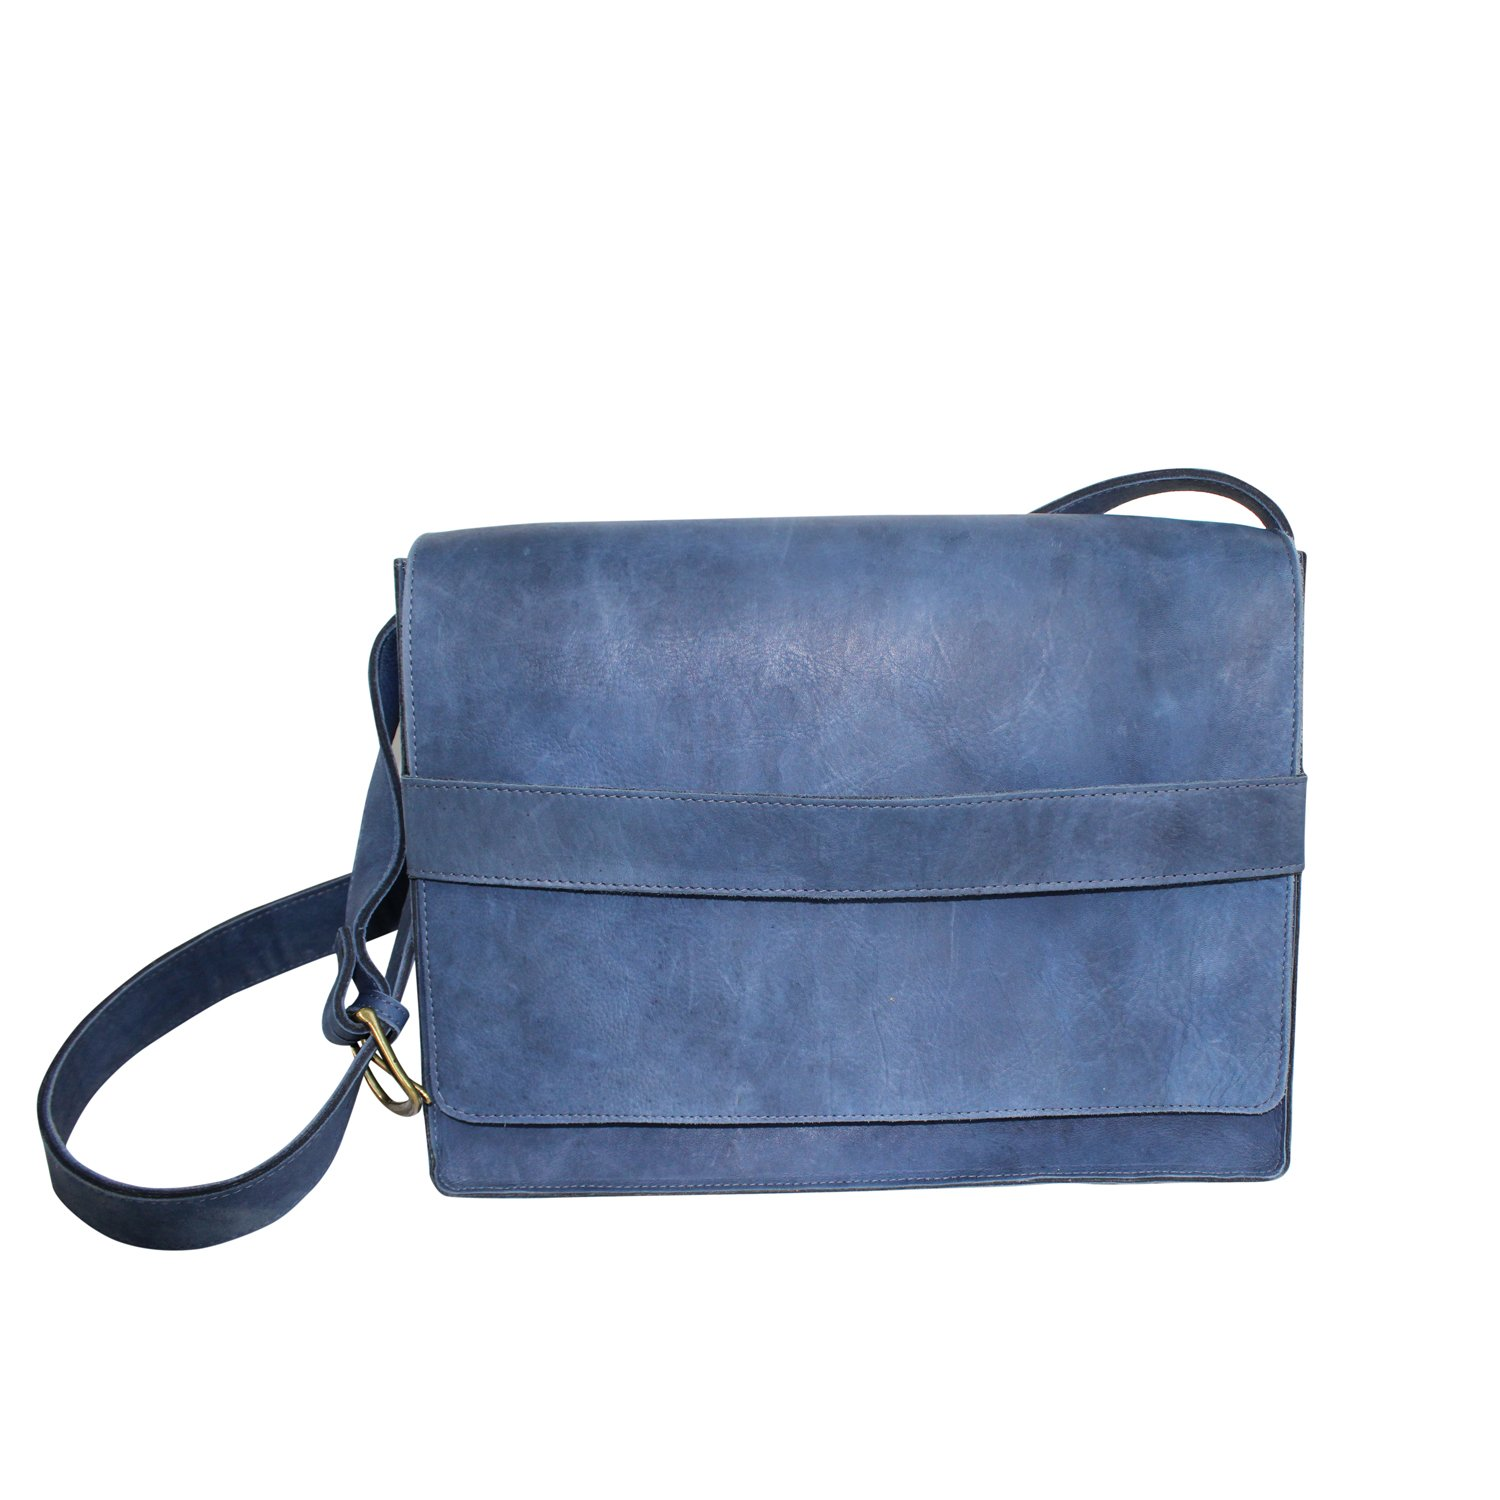 Ceri Hoover Womens Coleman Messenger Bag Navy OS